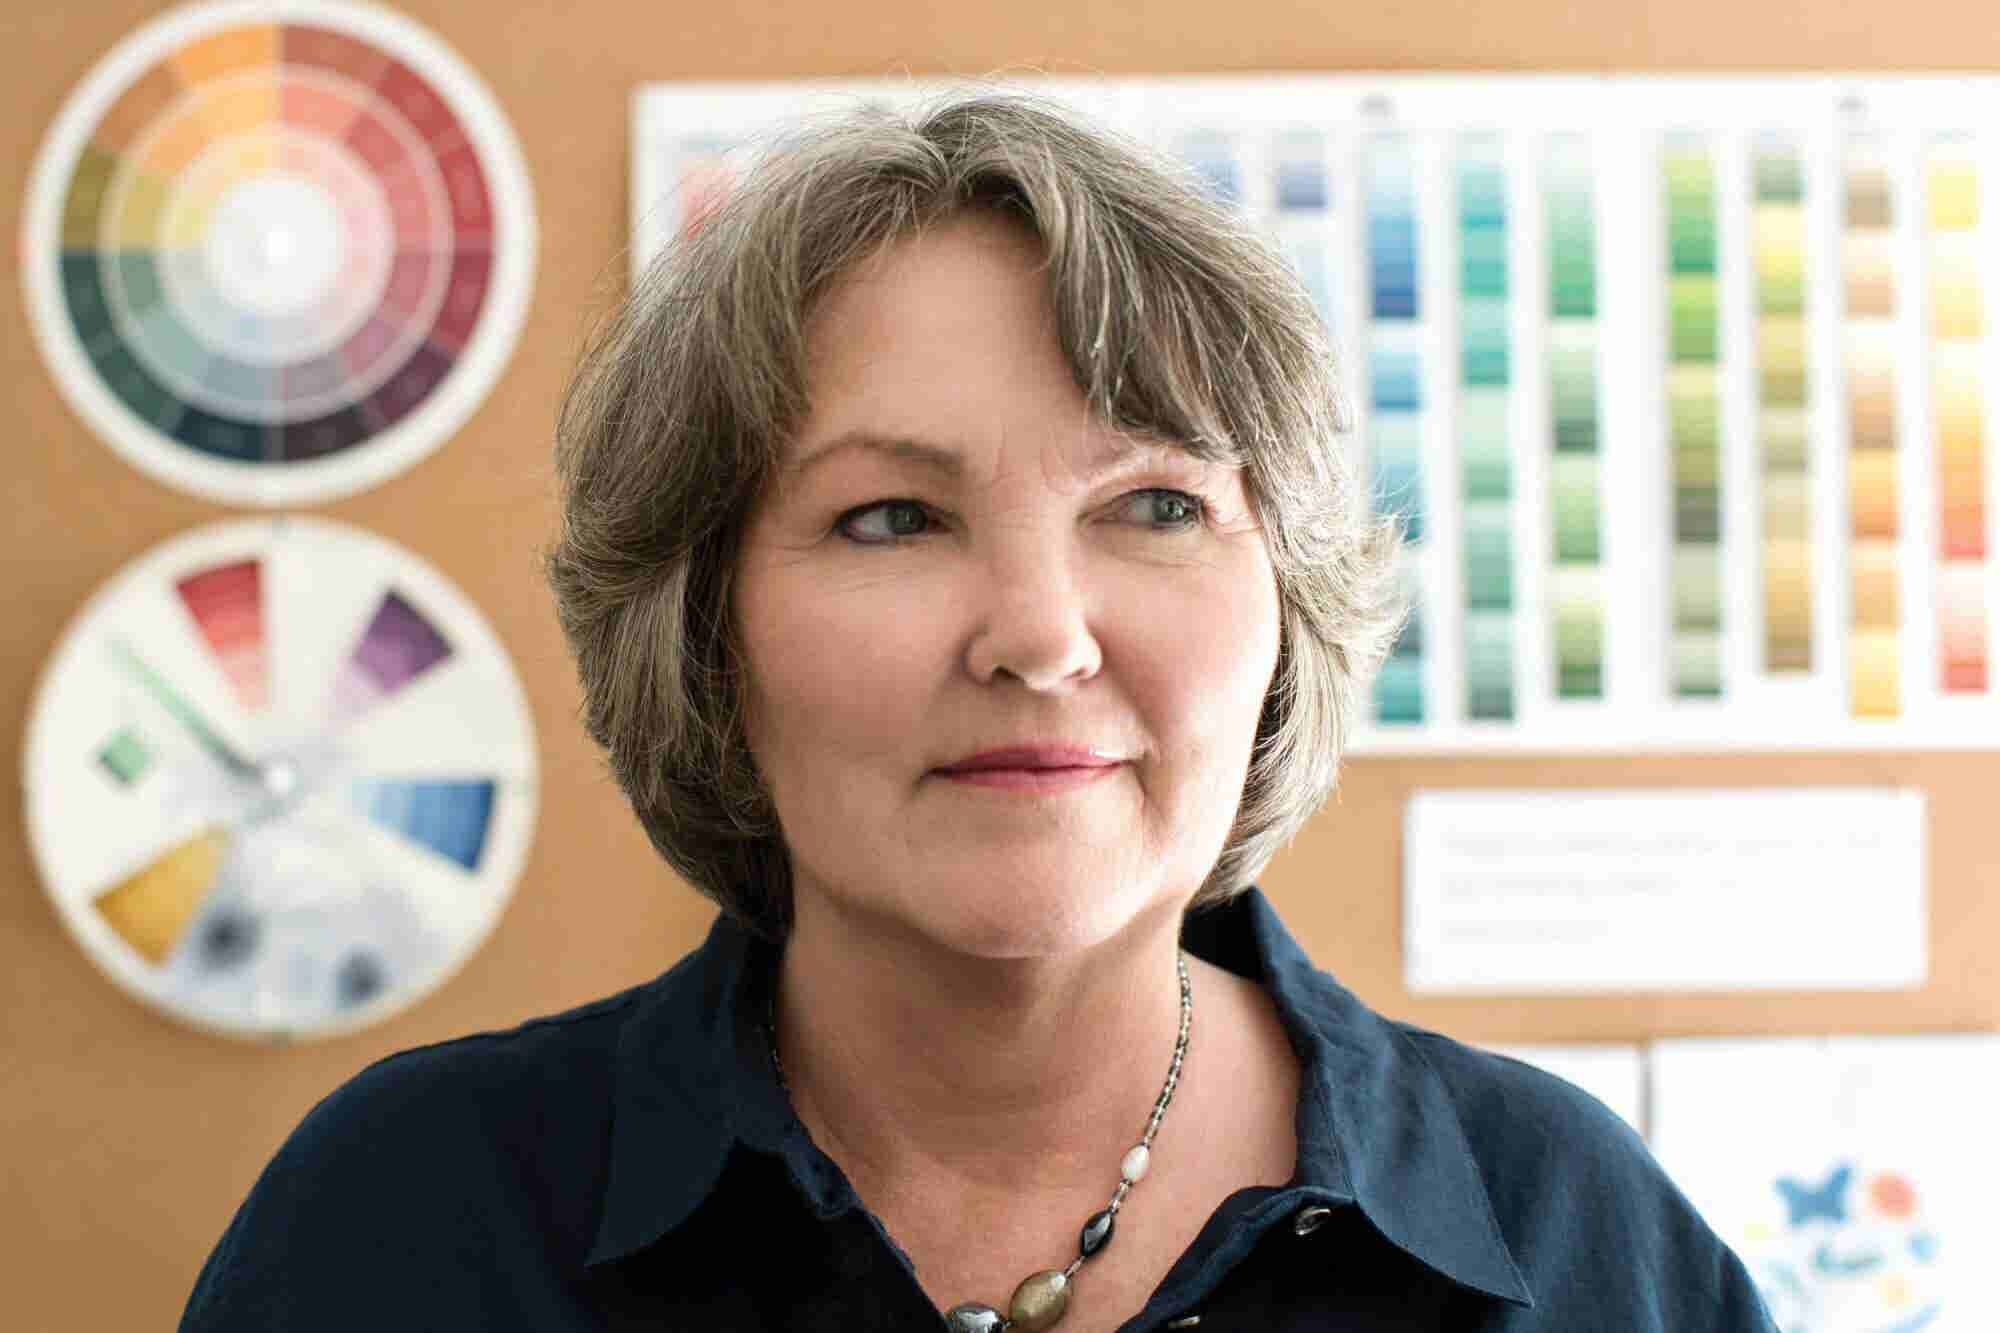 How Online Embroidery Shop Trish Burr Found Business Success With Support From FedEx Express